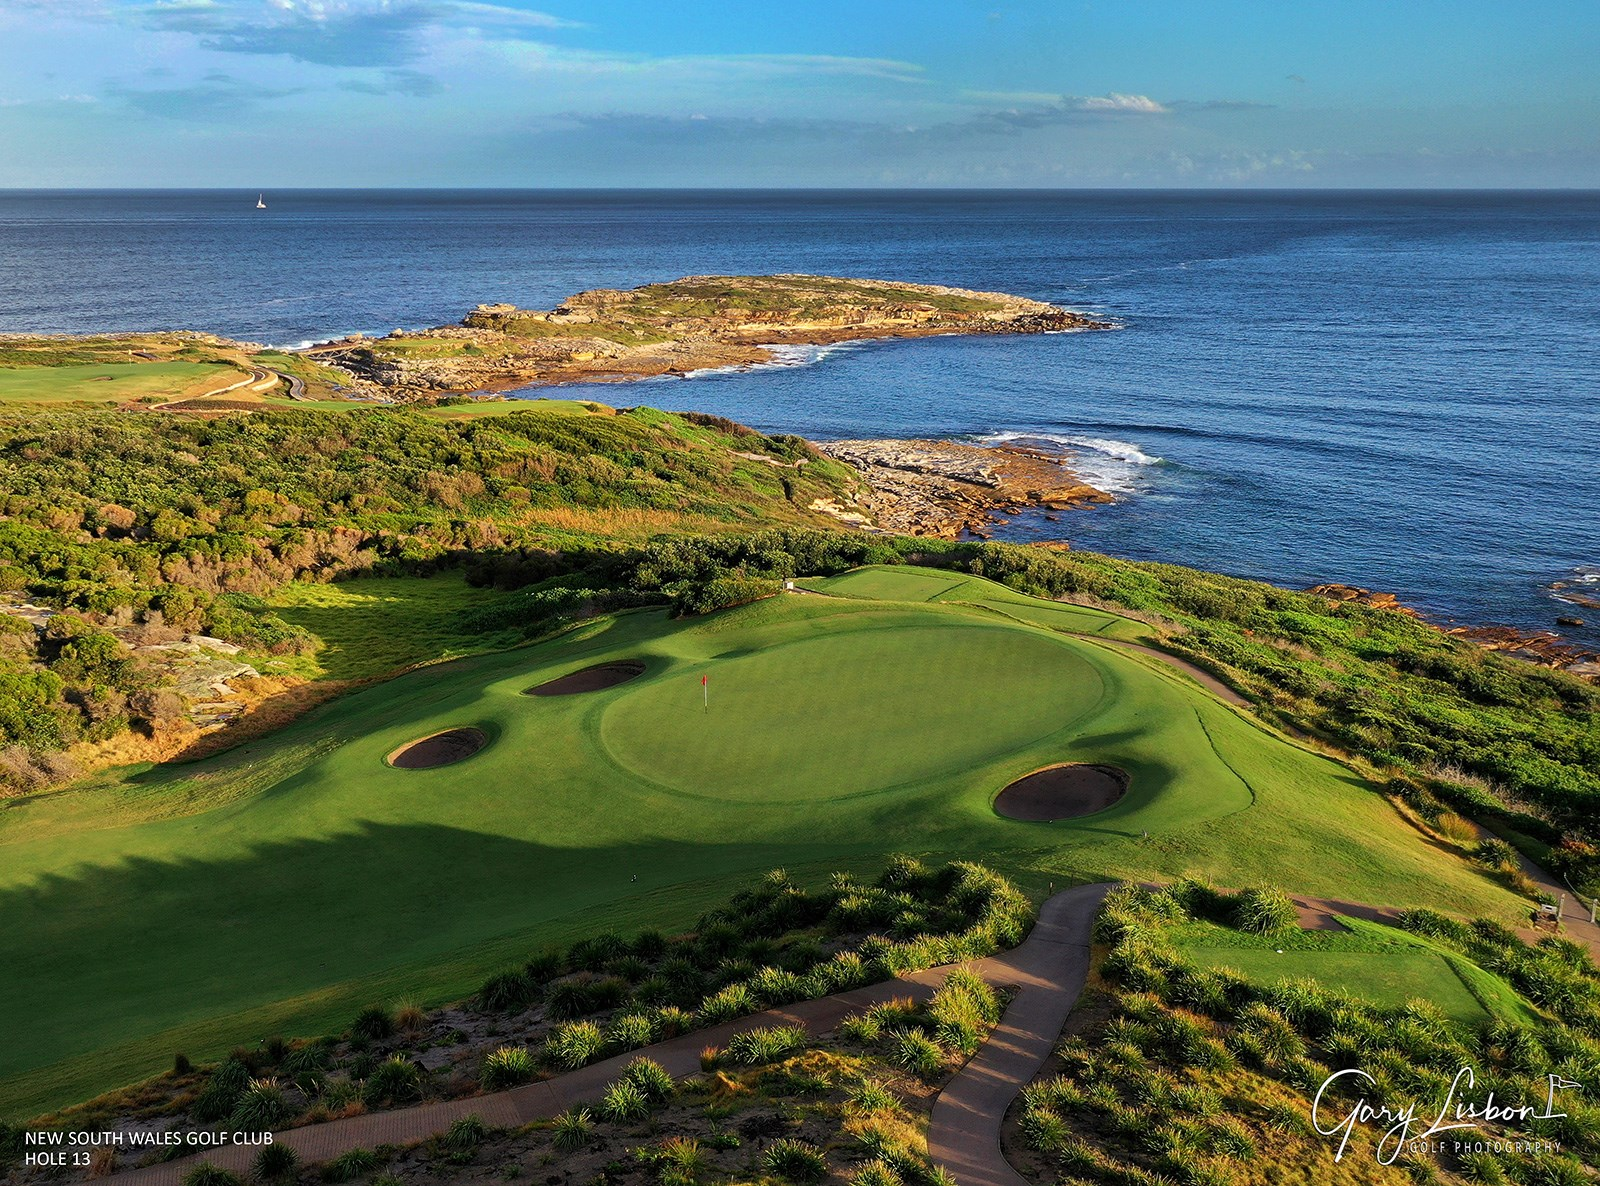 The New South Wales Golf Club Hole 13